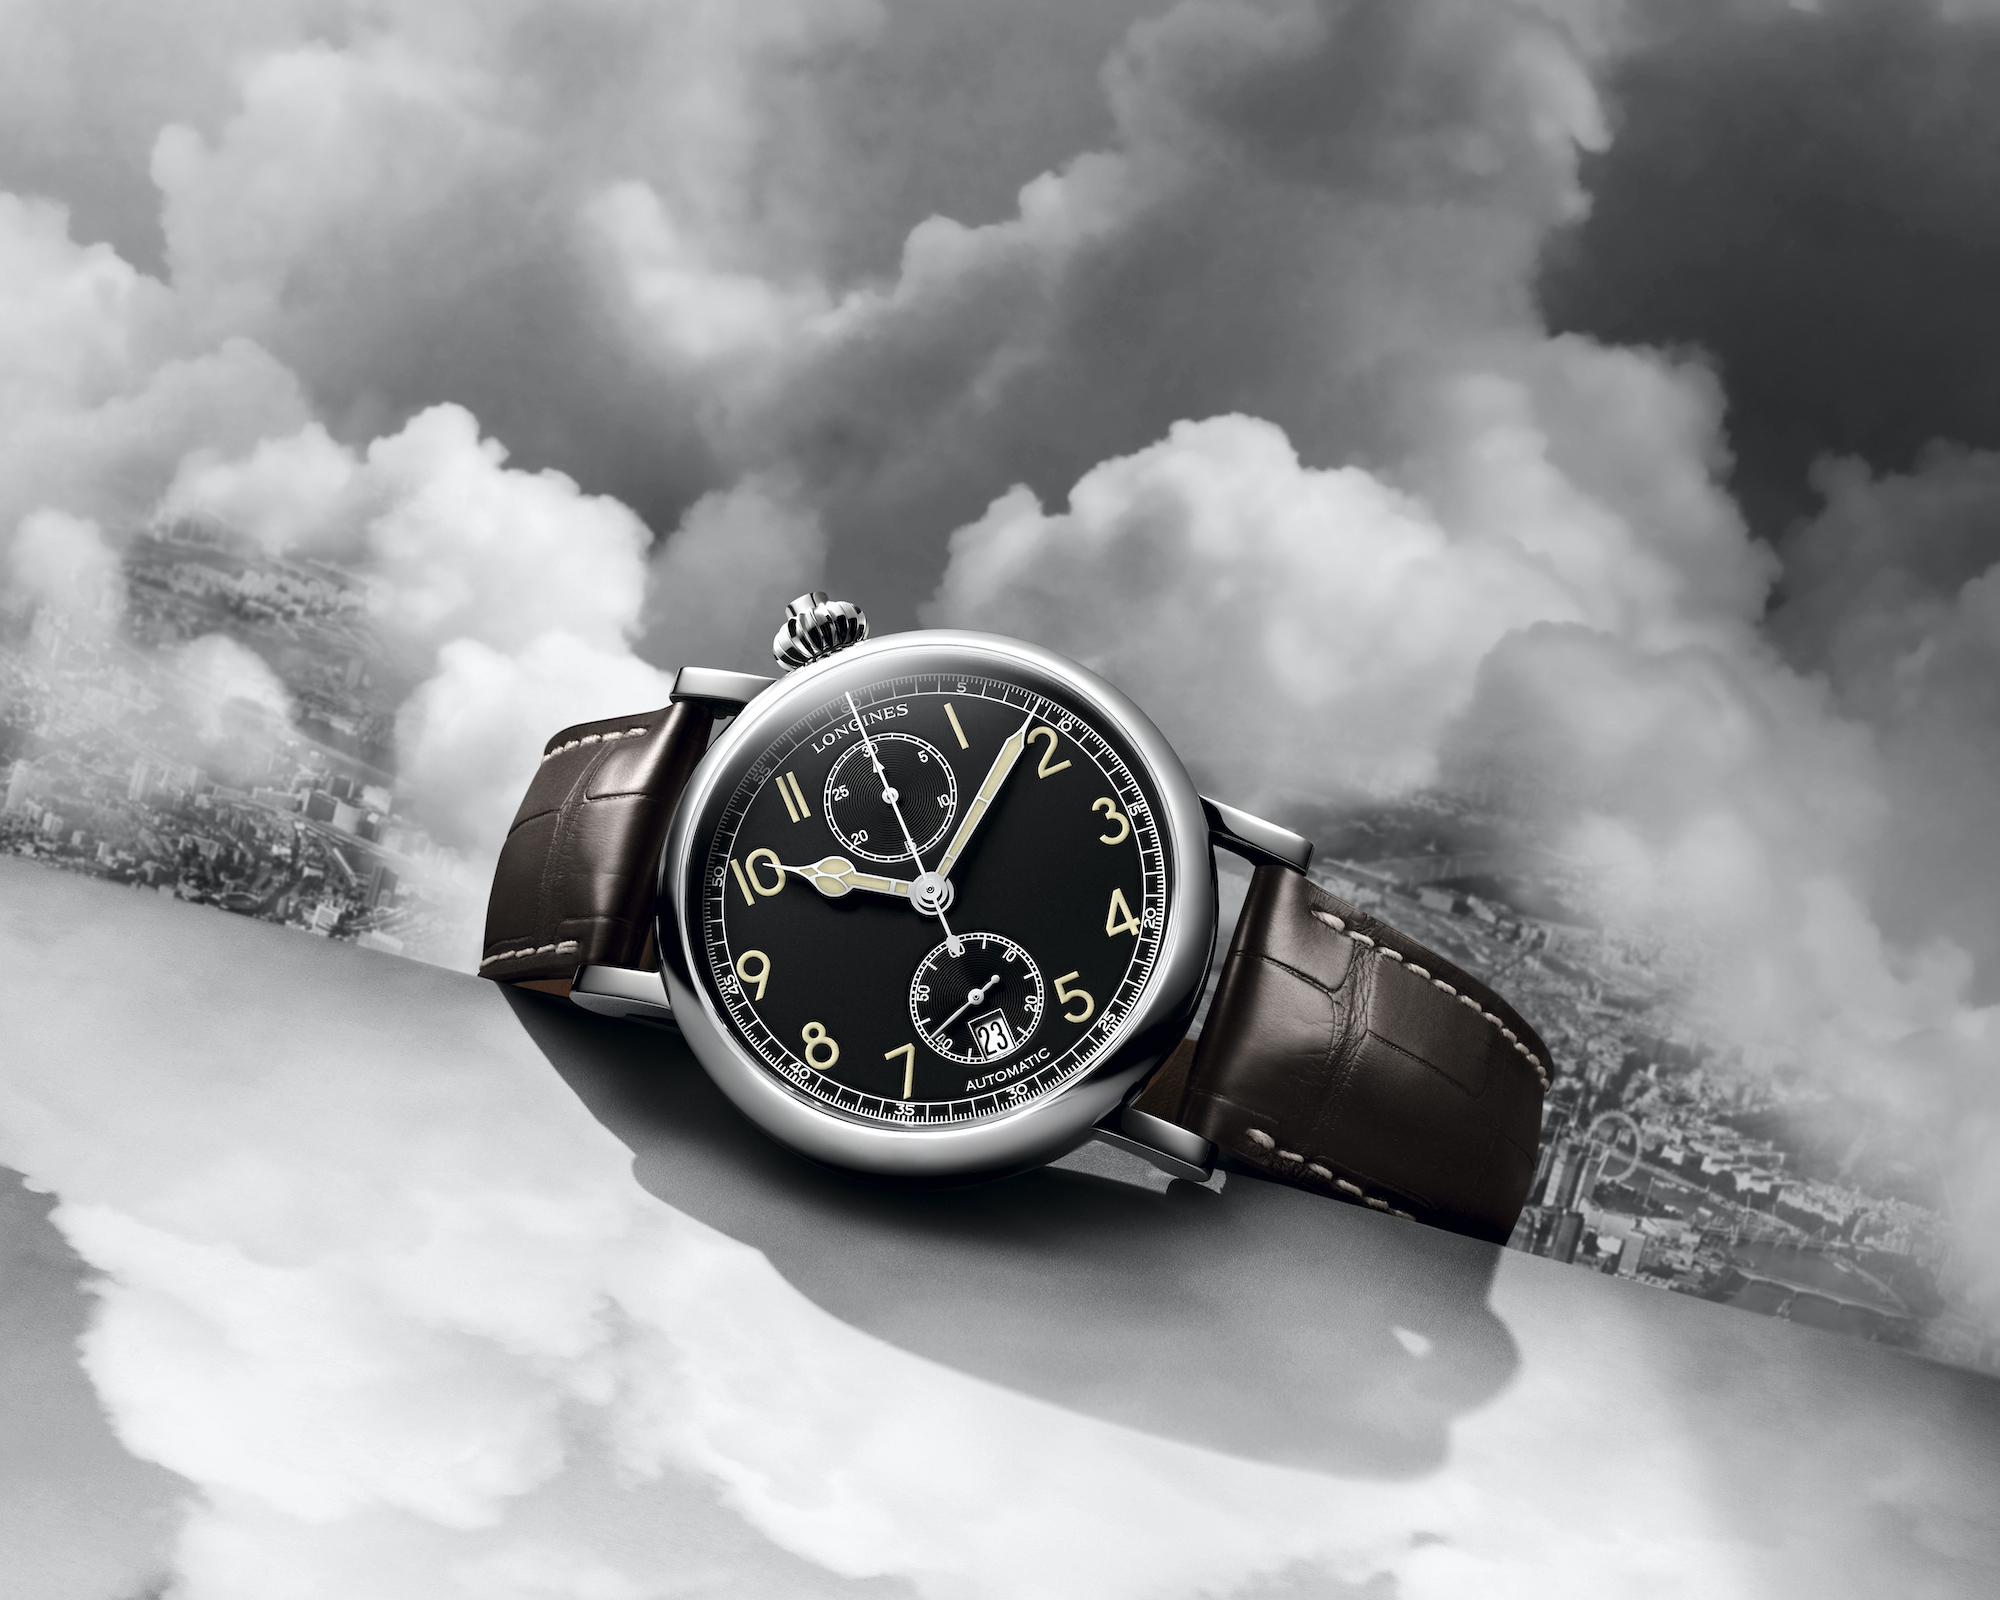 The Longines Avigation Watch A-7 1935 lifestyle